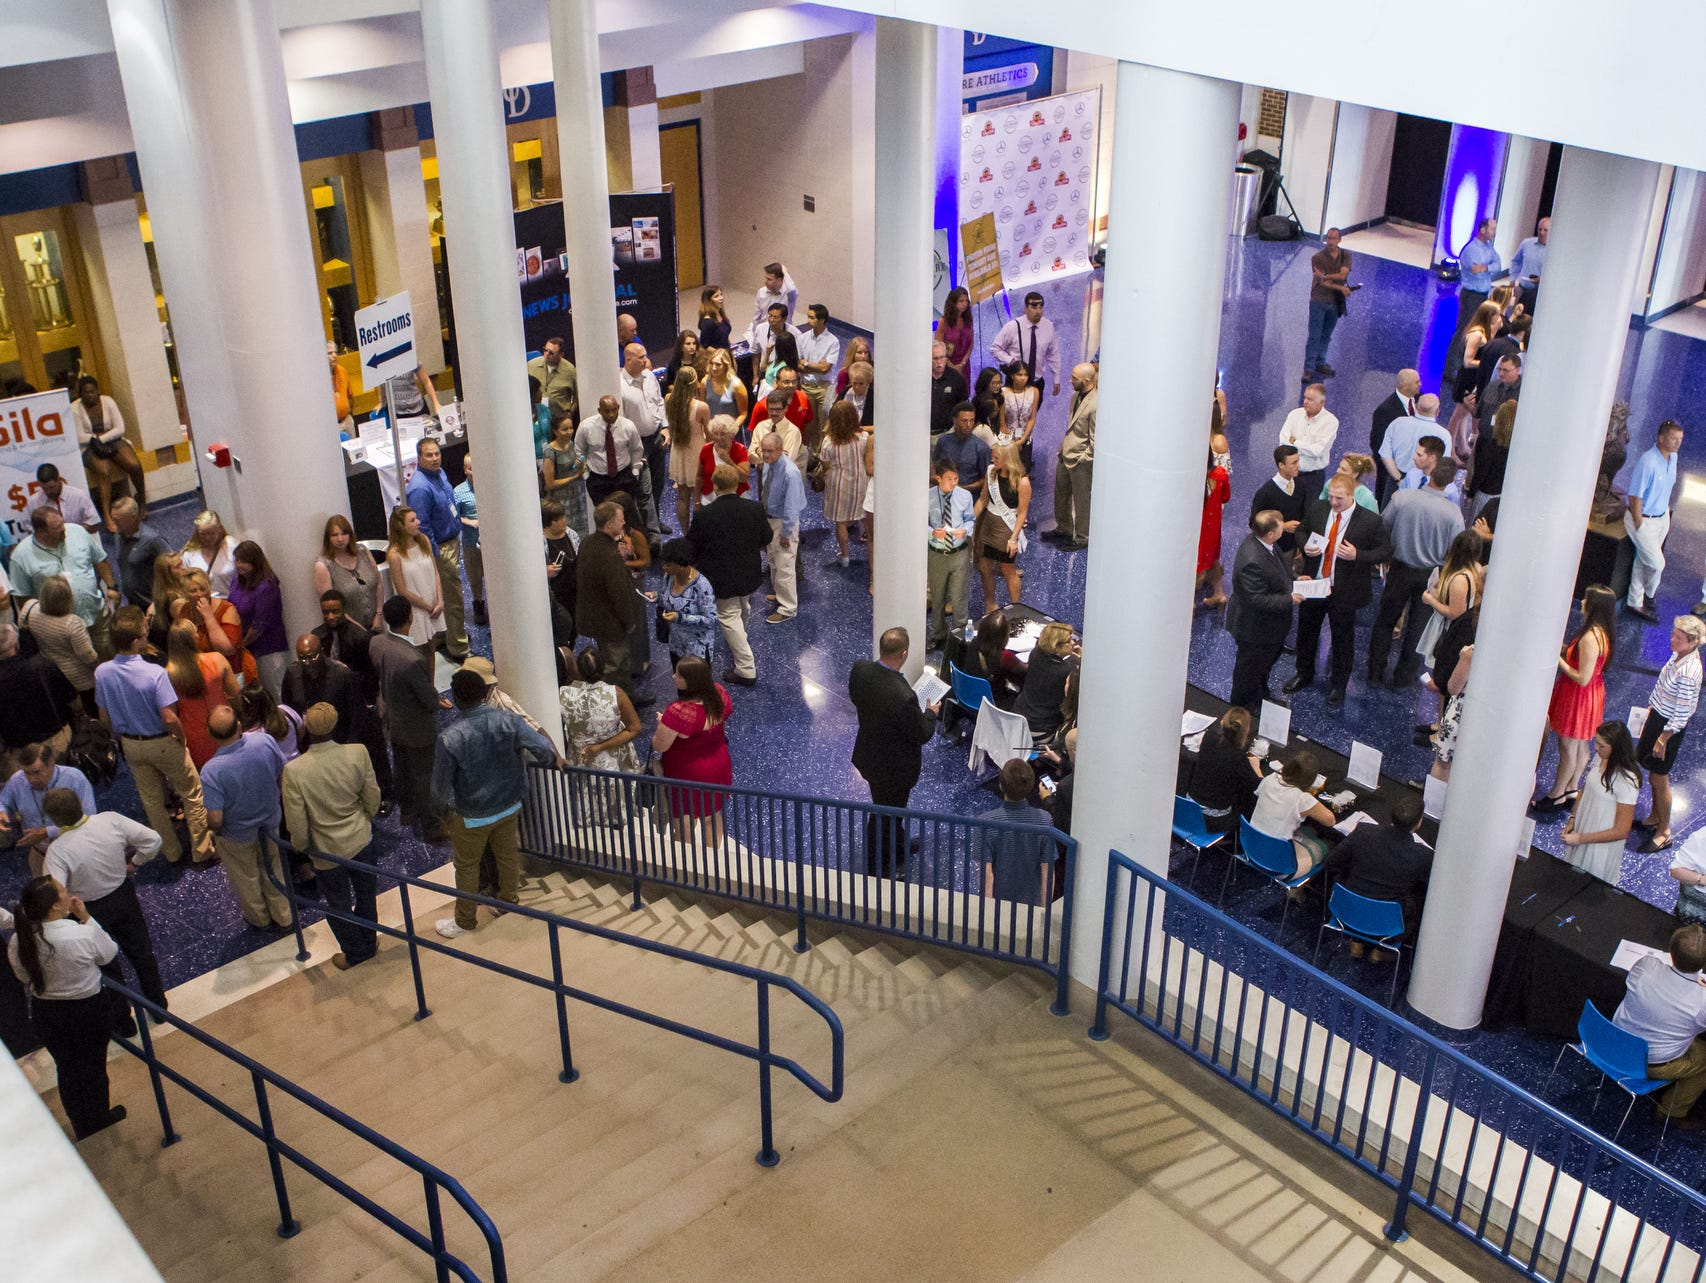 Guests at the Delaware Sports Awards banquet fill the lobby of the Bob Carpenter Center at the University of Delaware in Newark on Wednesday evening.